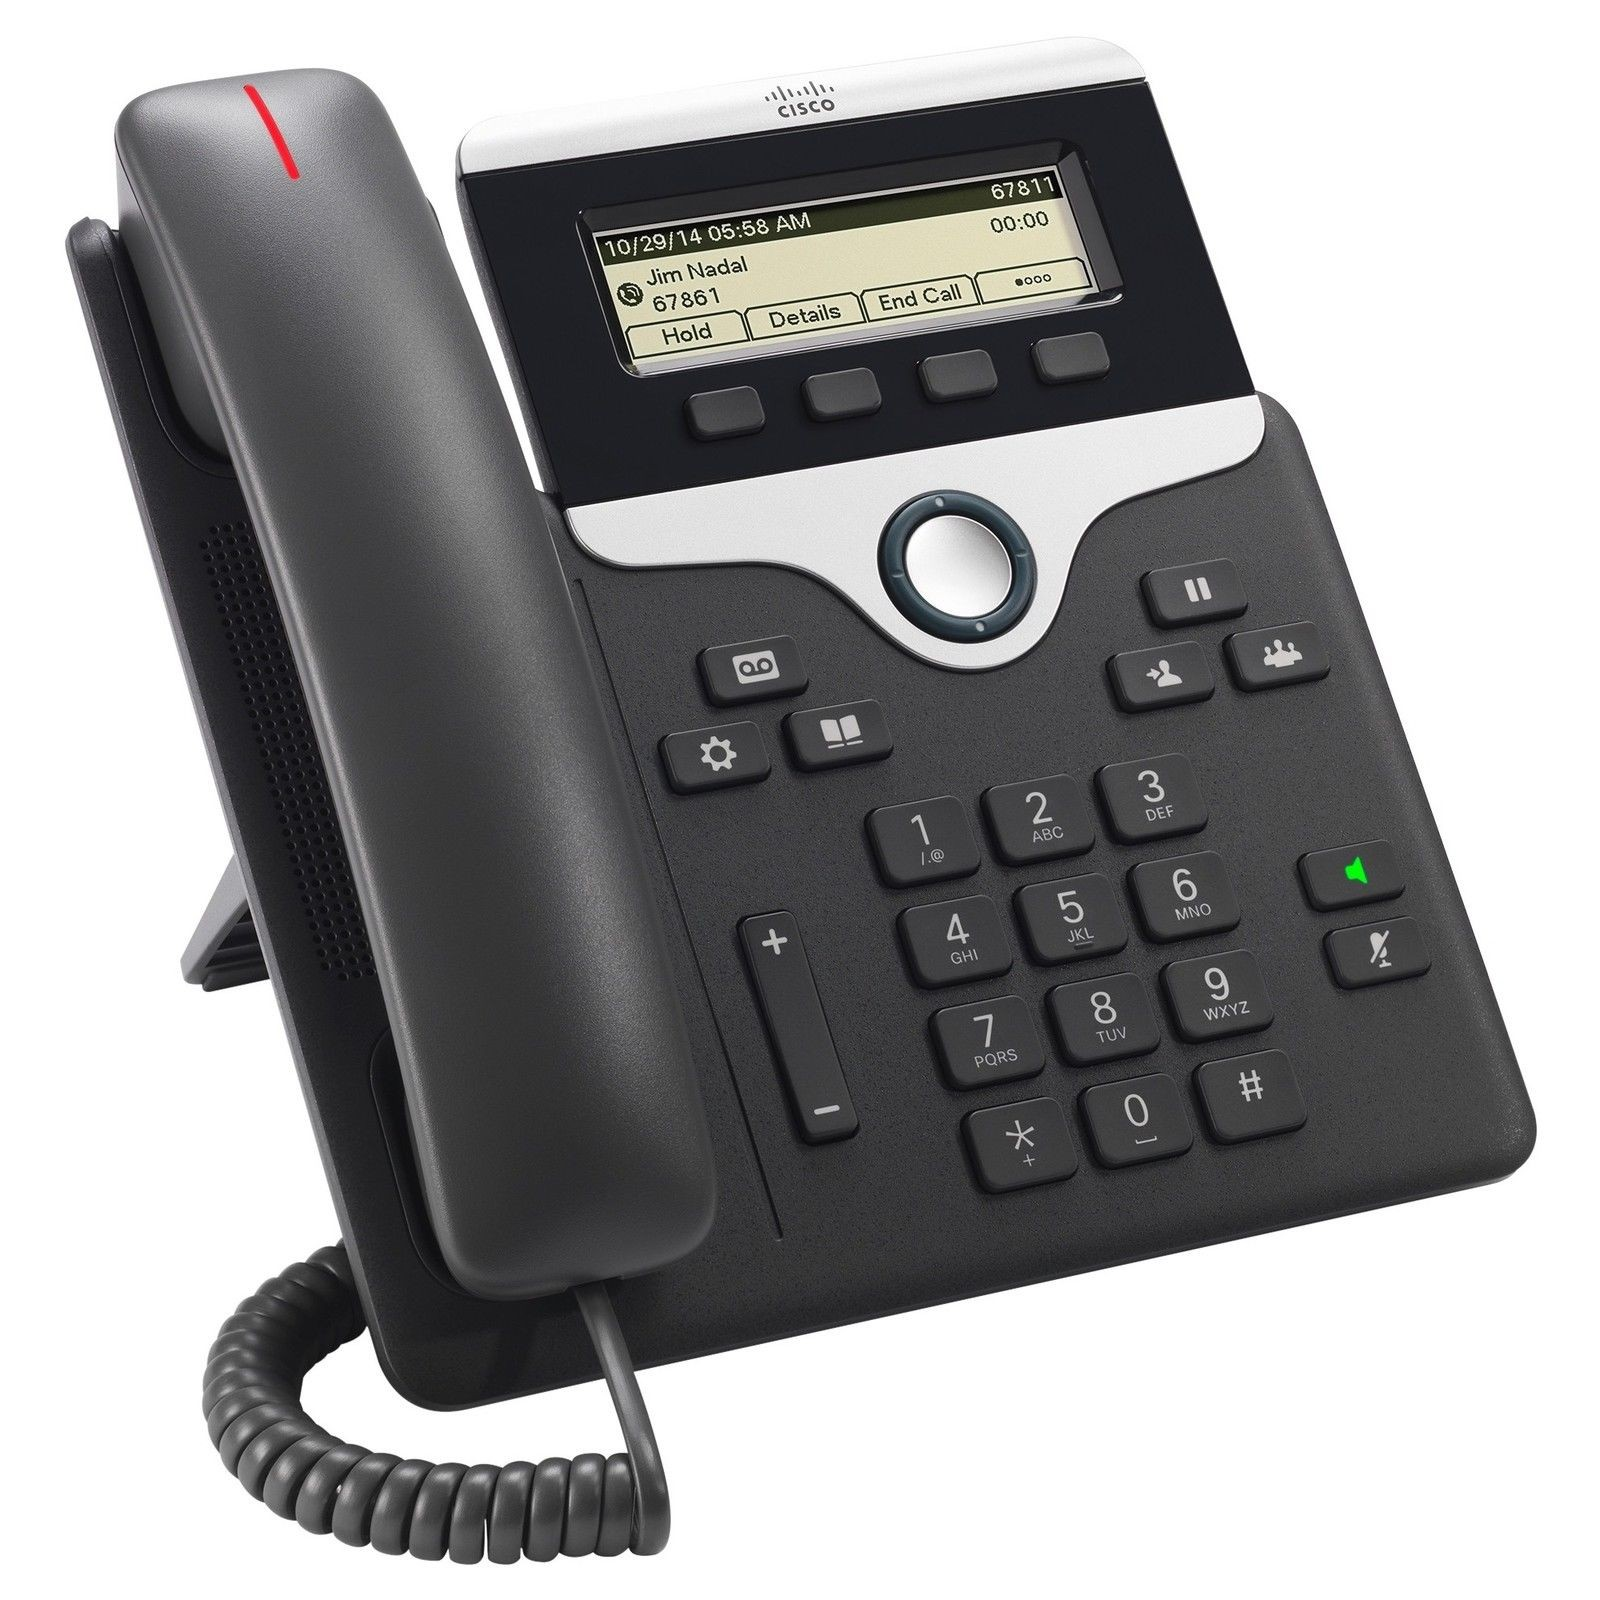 Cisco 7811 Unified Ip Phone From 163 95 83 Cisco 7811